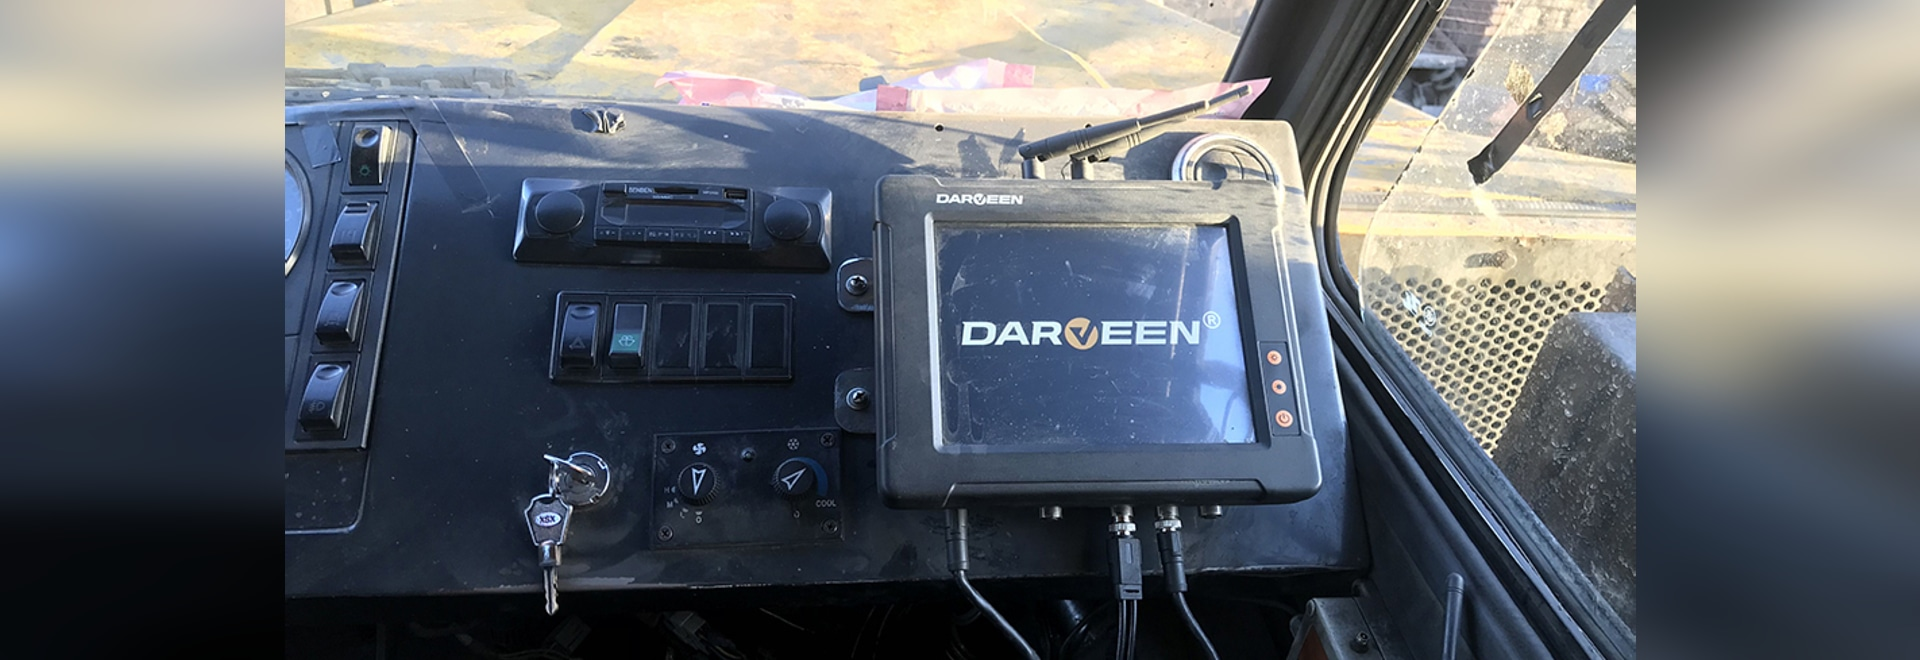 Darveen Vehicle Mount Computer with M12 Aviation Socket for fleet management of mining vehicles